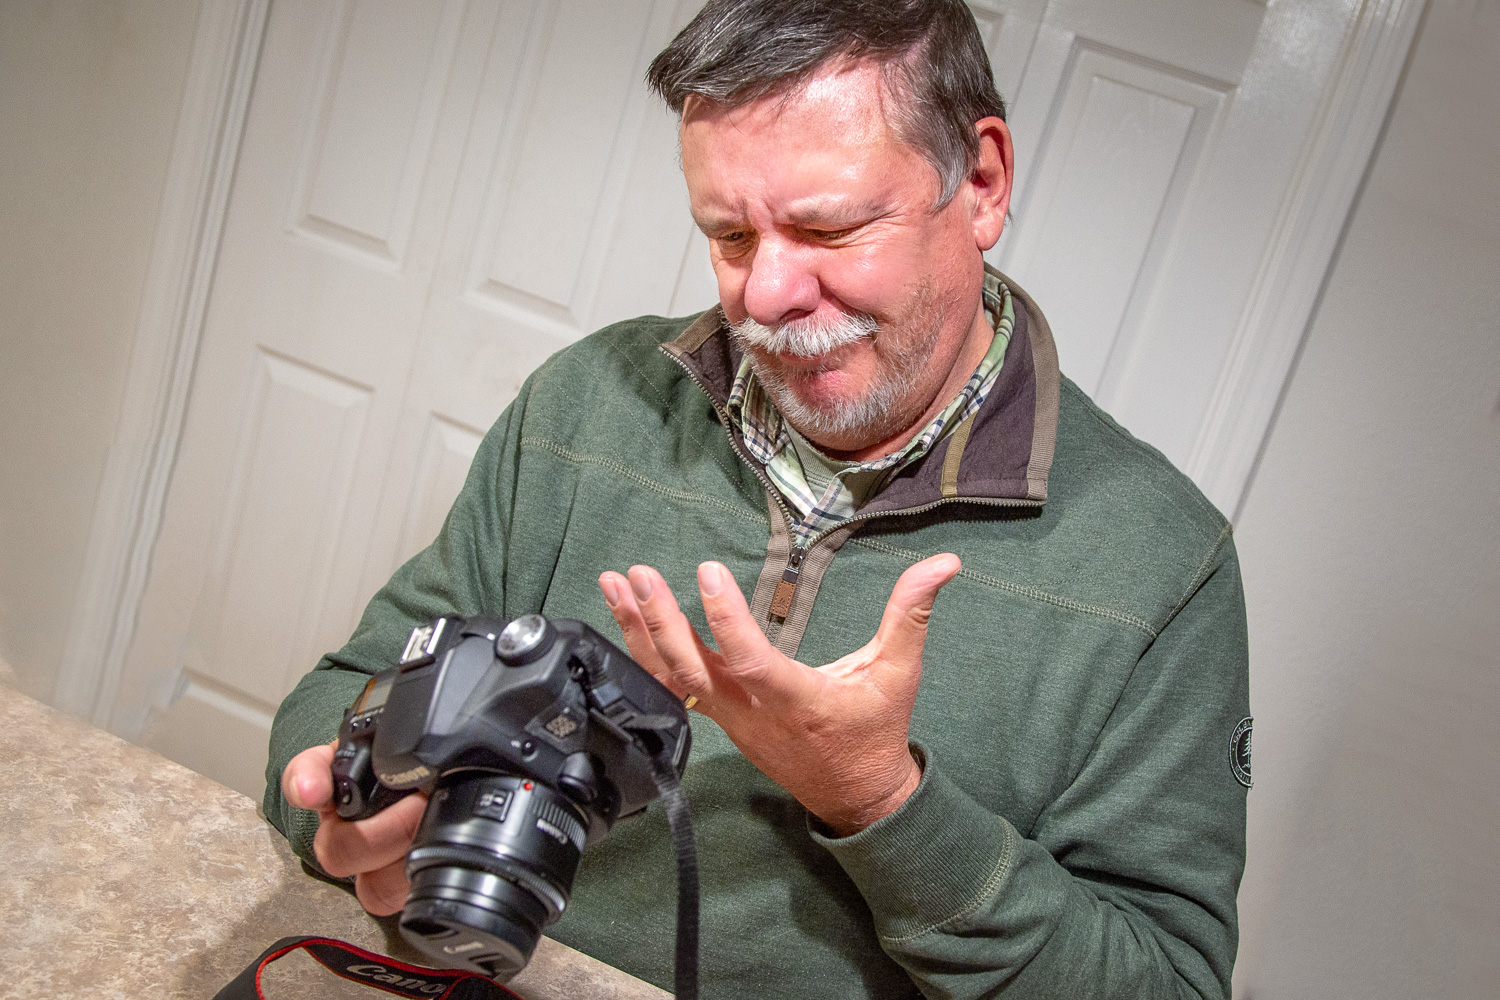 Image: We all make 'em – Dumb Photographer Mistakes. When the gotchas getcha, being able to qu...